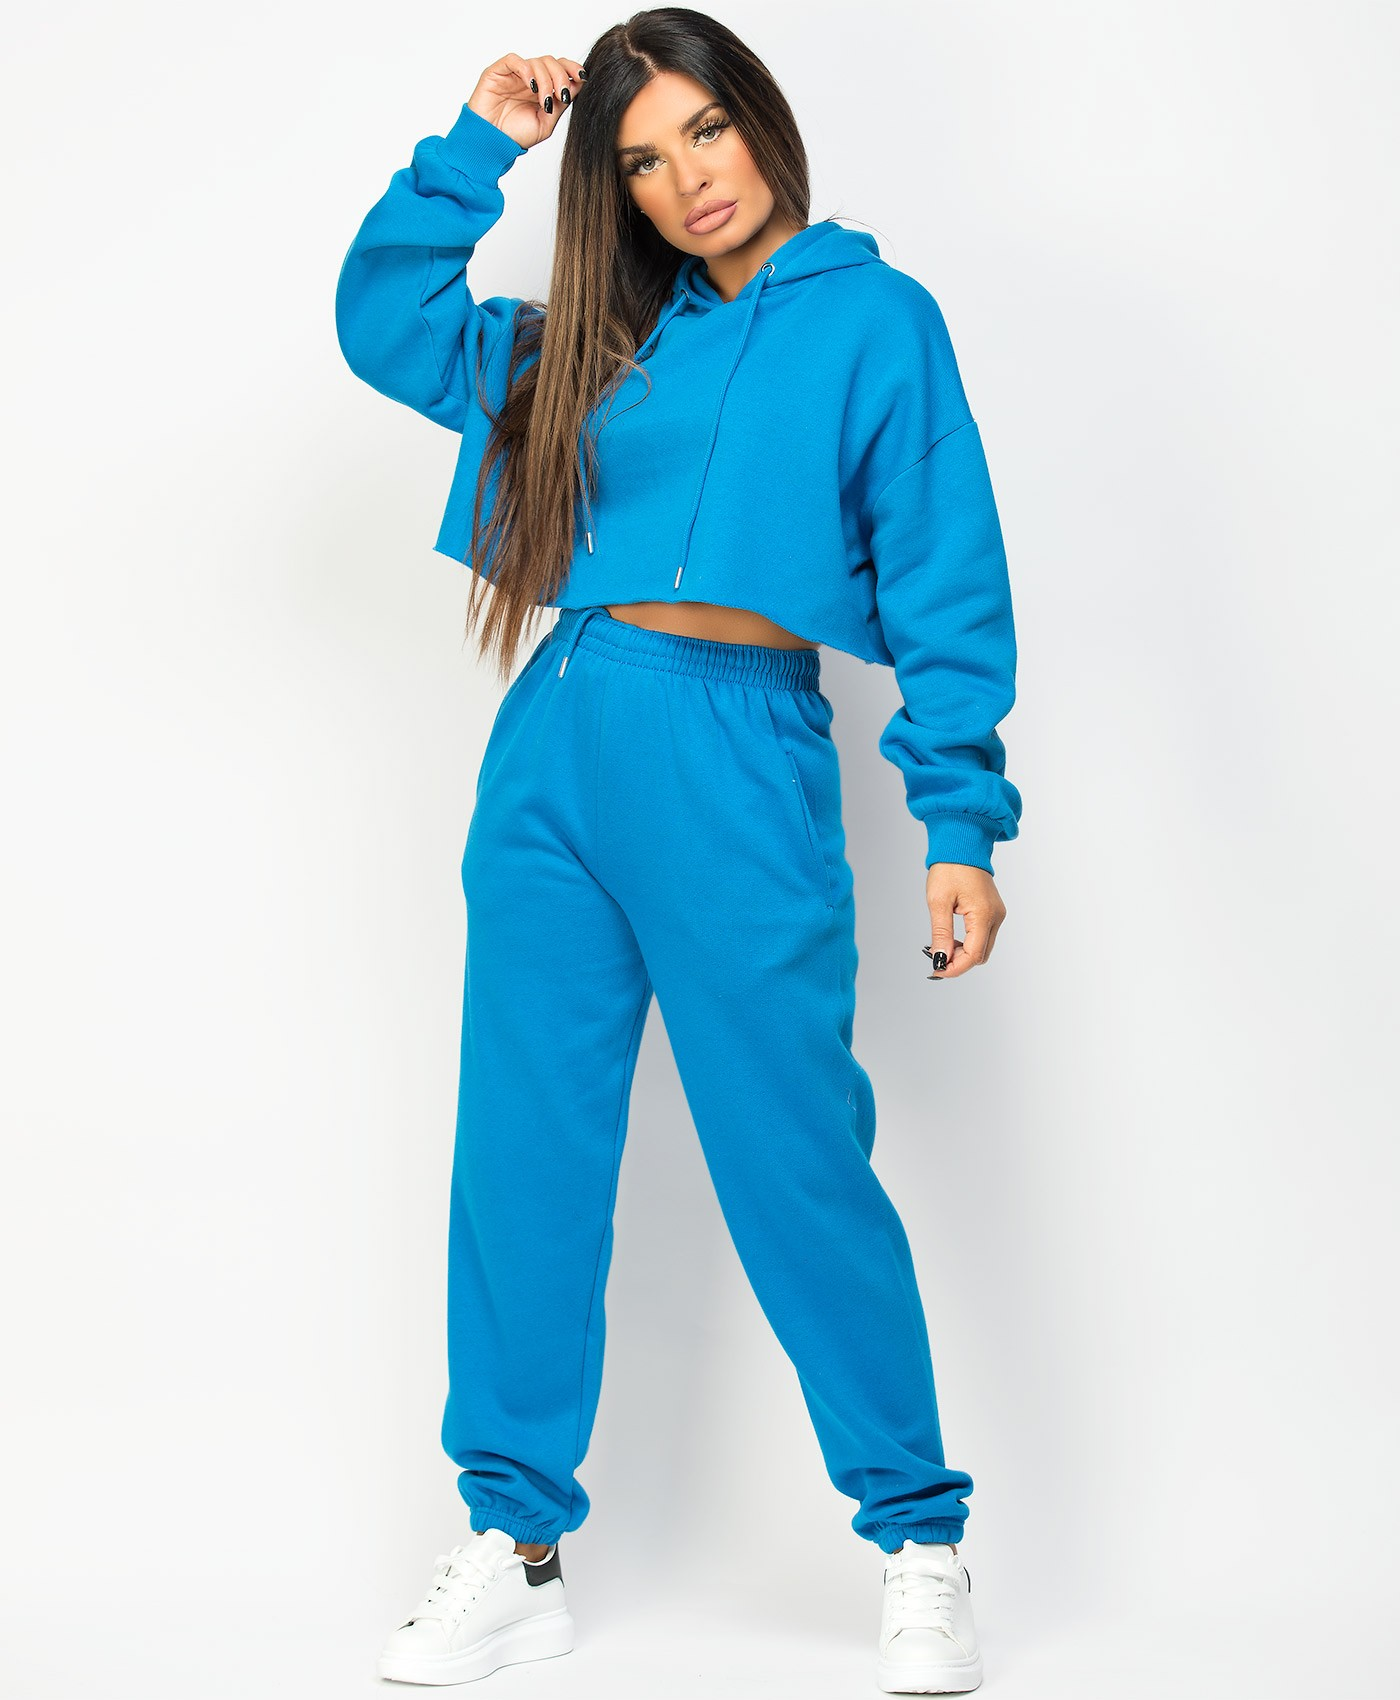 Royal-Blue-Oversized-Cropped-Hoody-&-Joggers-Loungewear-Set-1